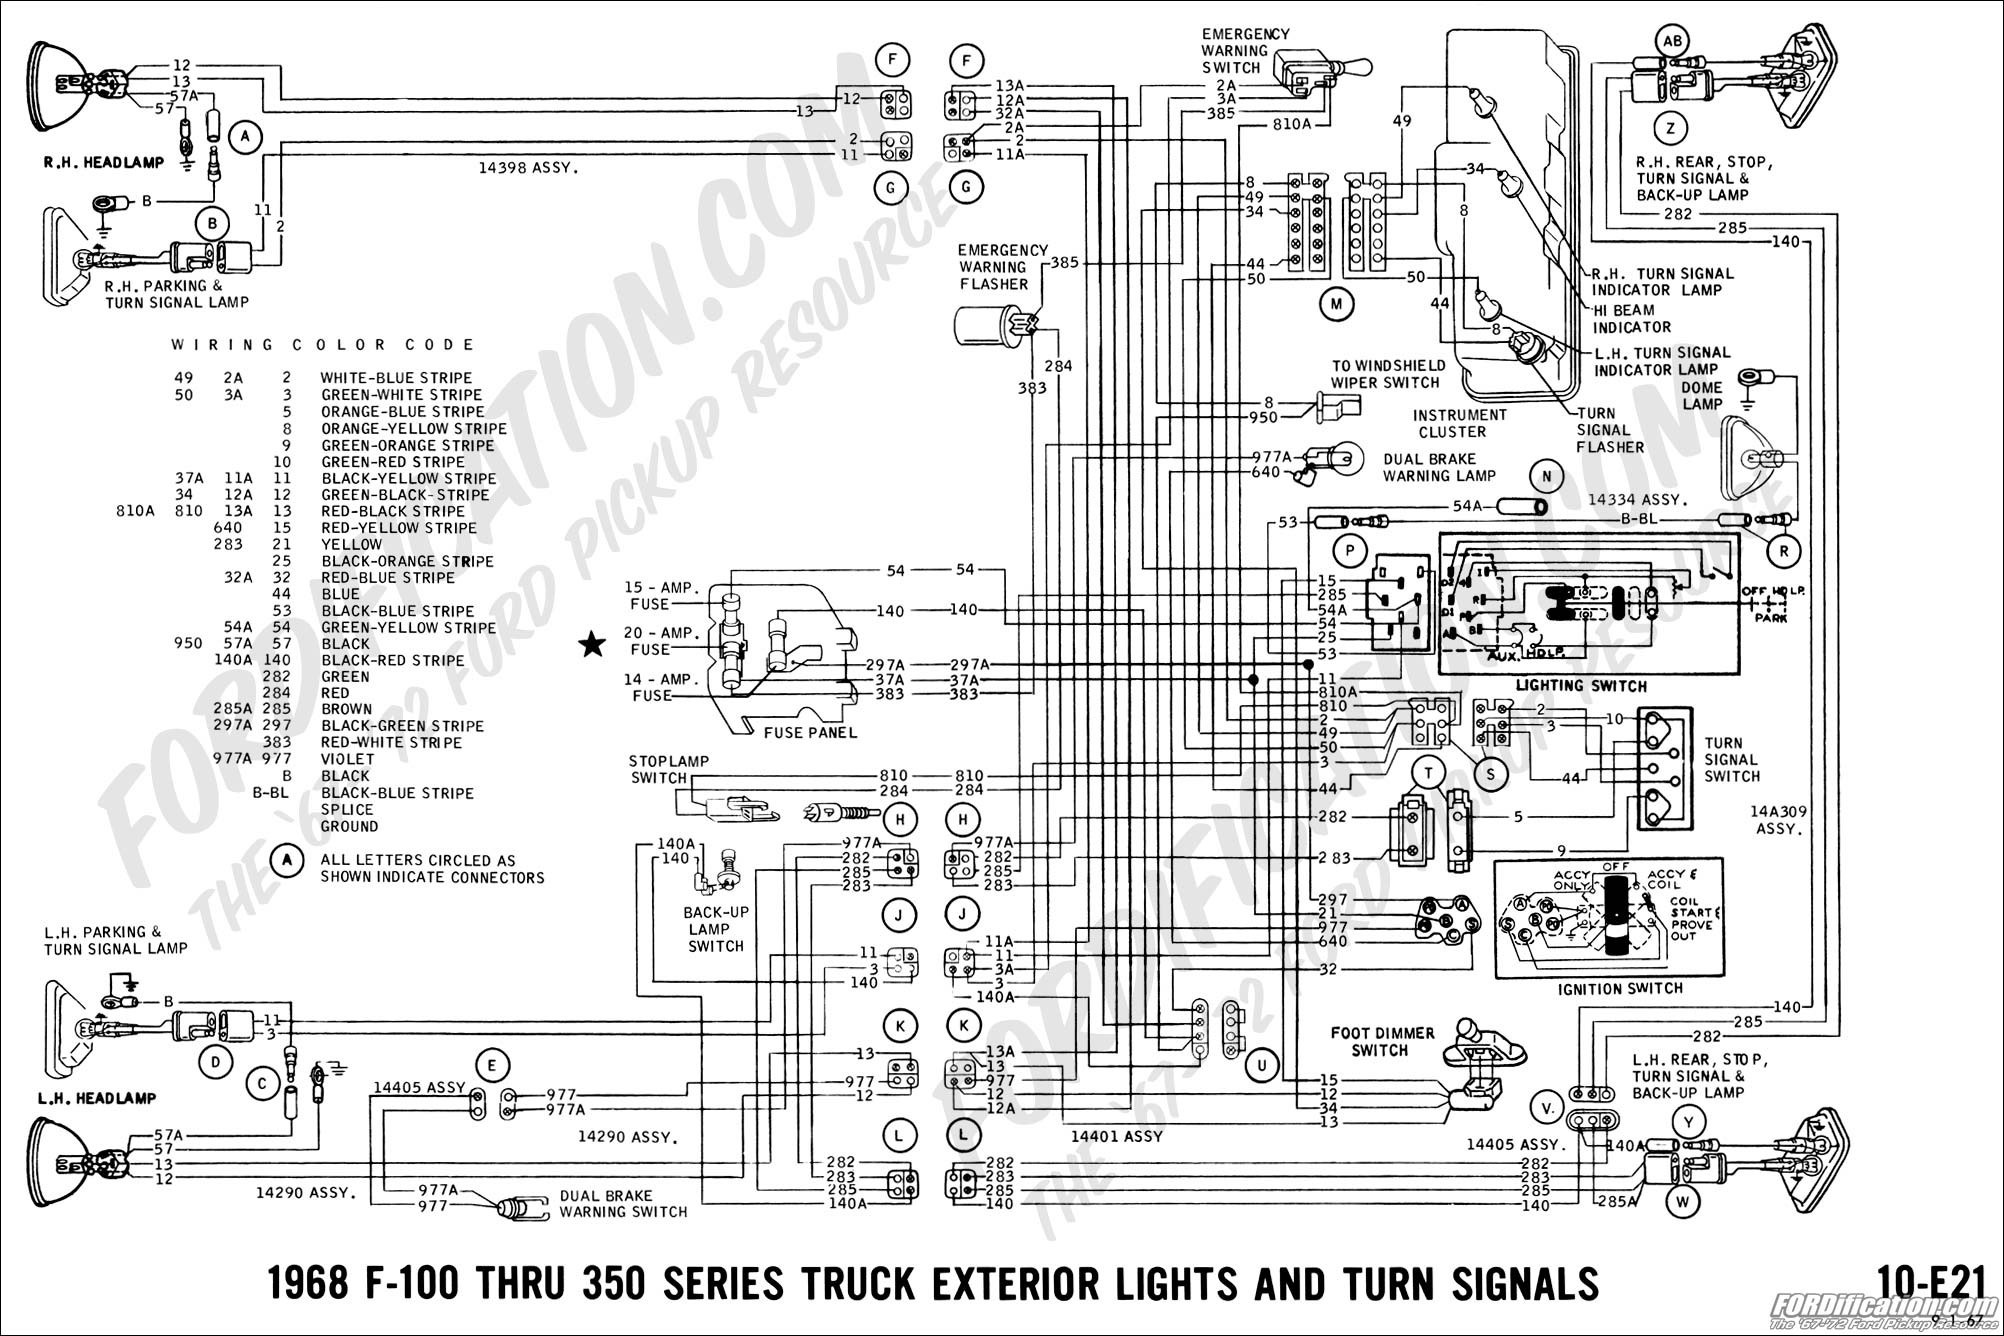 55 Chevy Generator Wiring Diagram Library Ford F150 1955 Chevrolet Diagrams Of Turn Signal Schematic